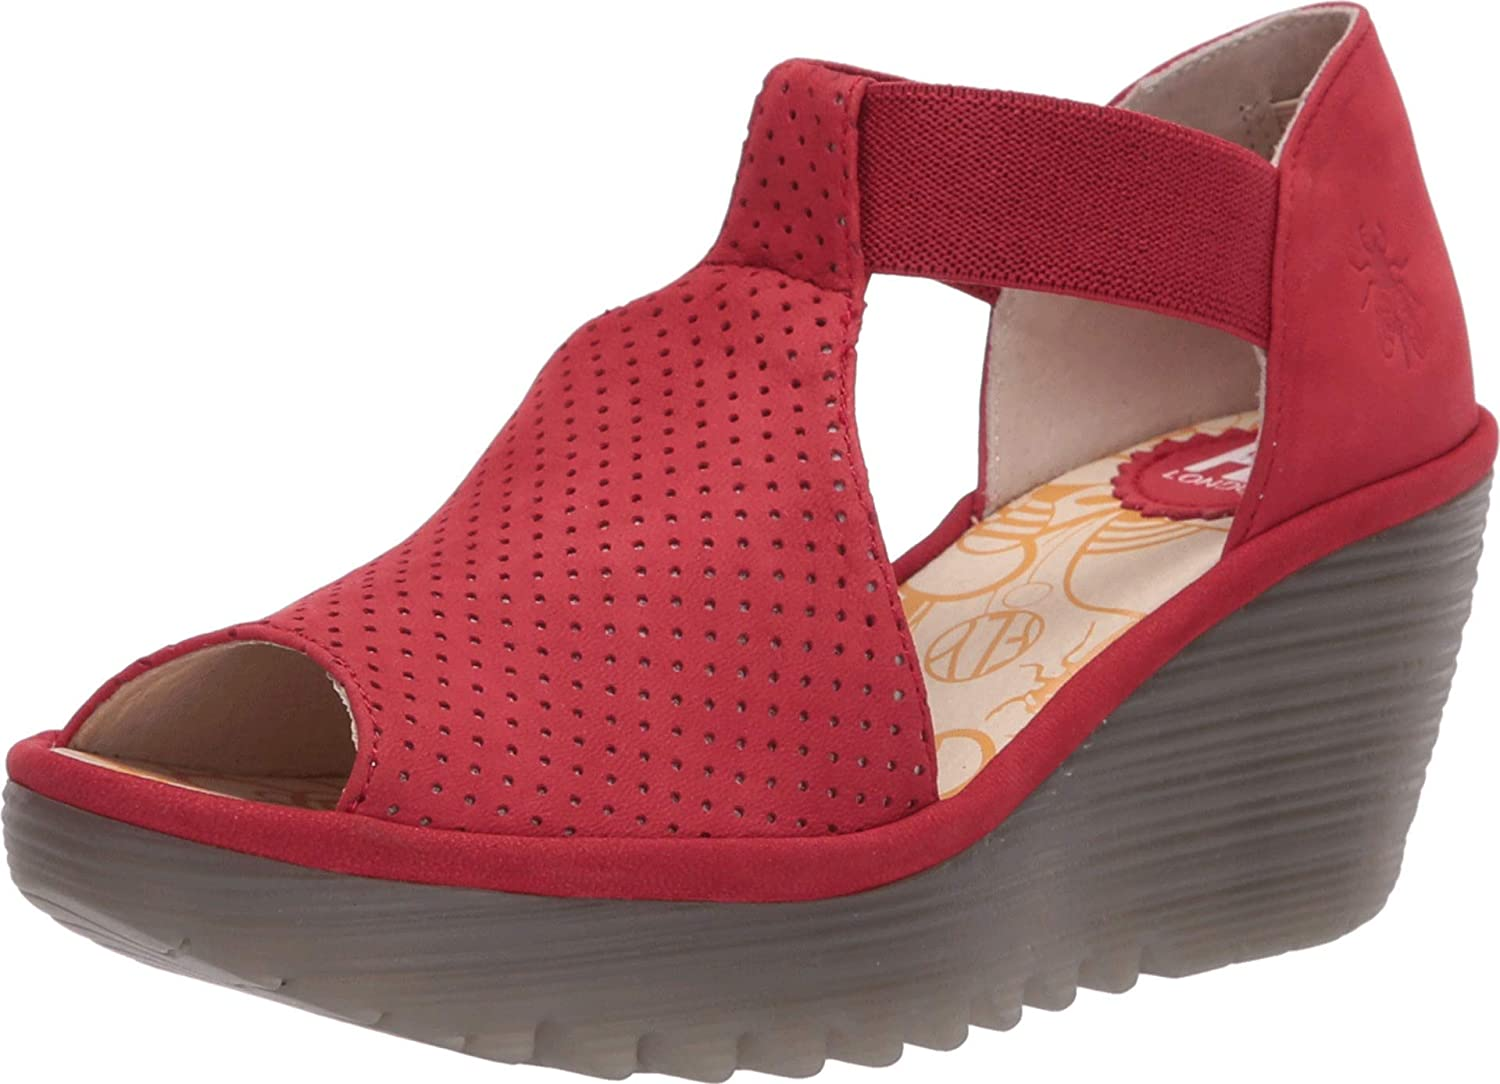 FLY Complete Free Shipping London Women's Yemo146Fly 25% OFF Wedge Sandal